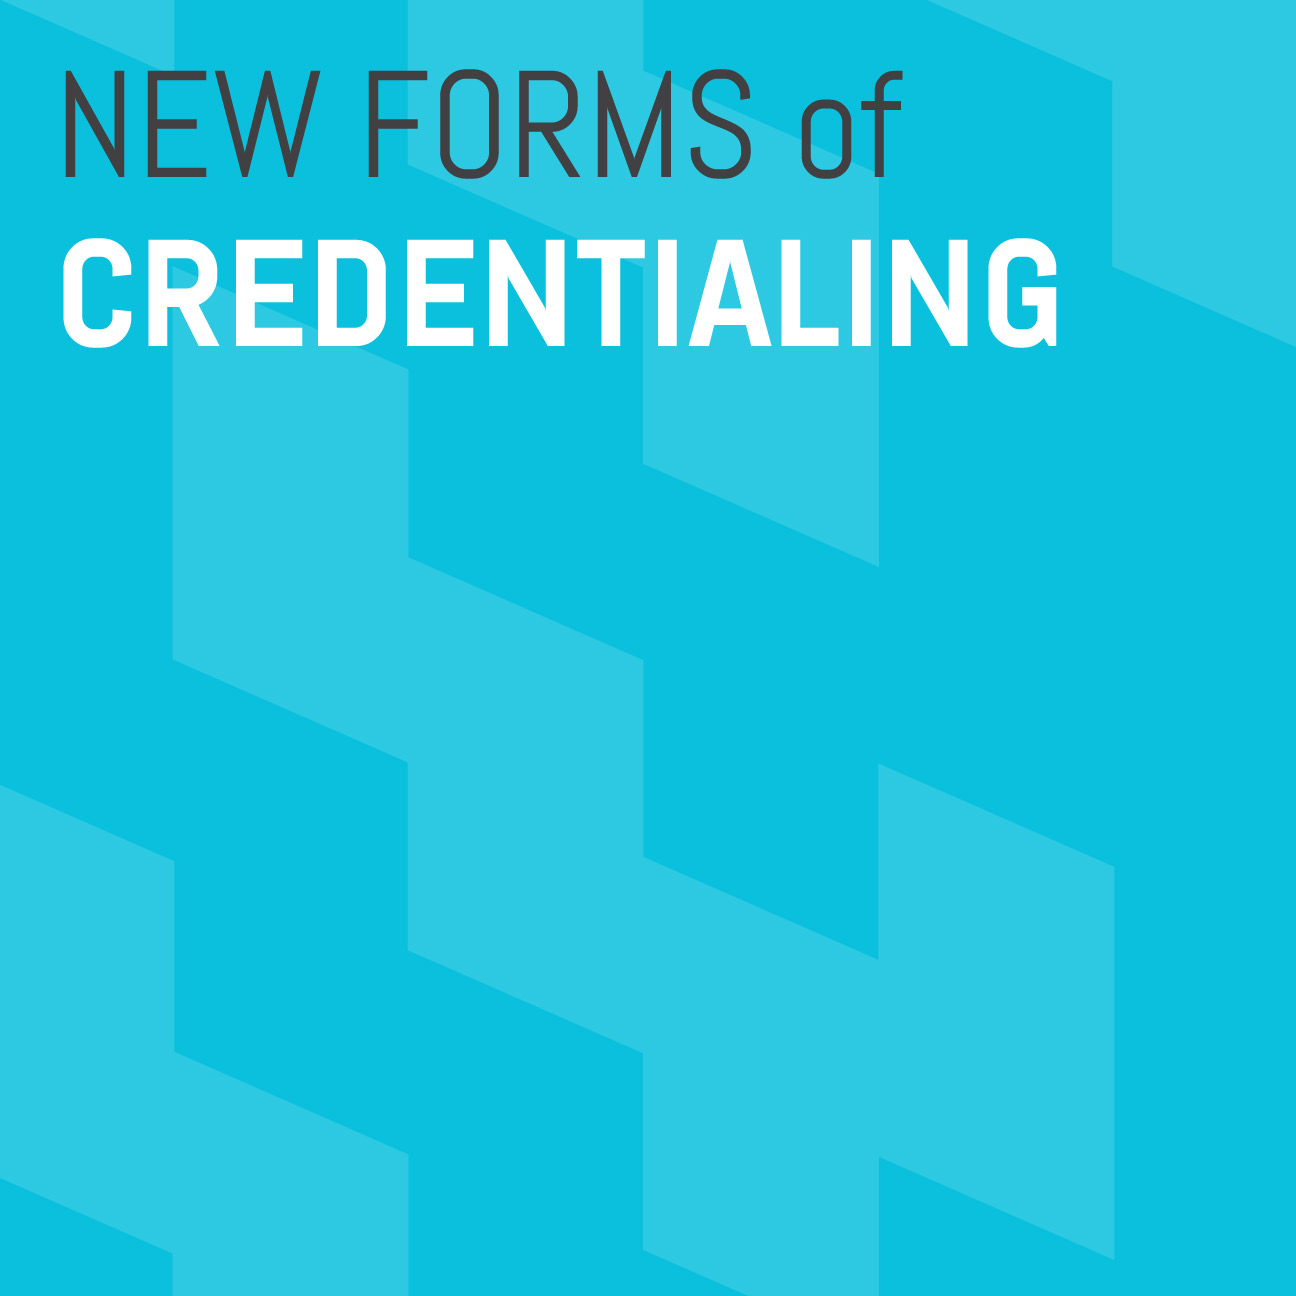 New-Forms-of-Credentialing.jpg